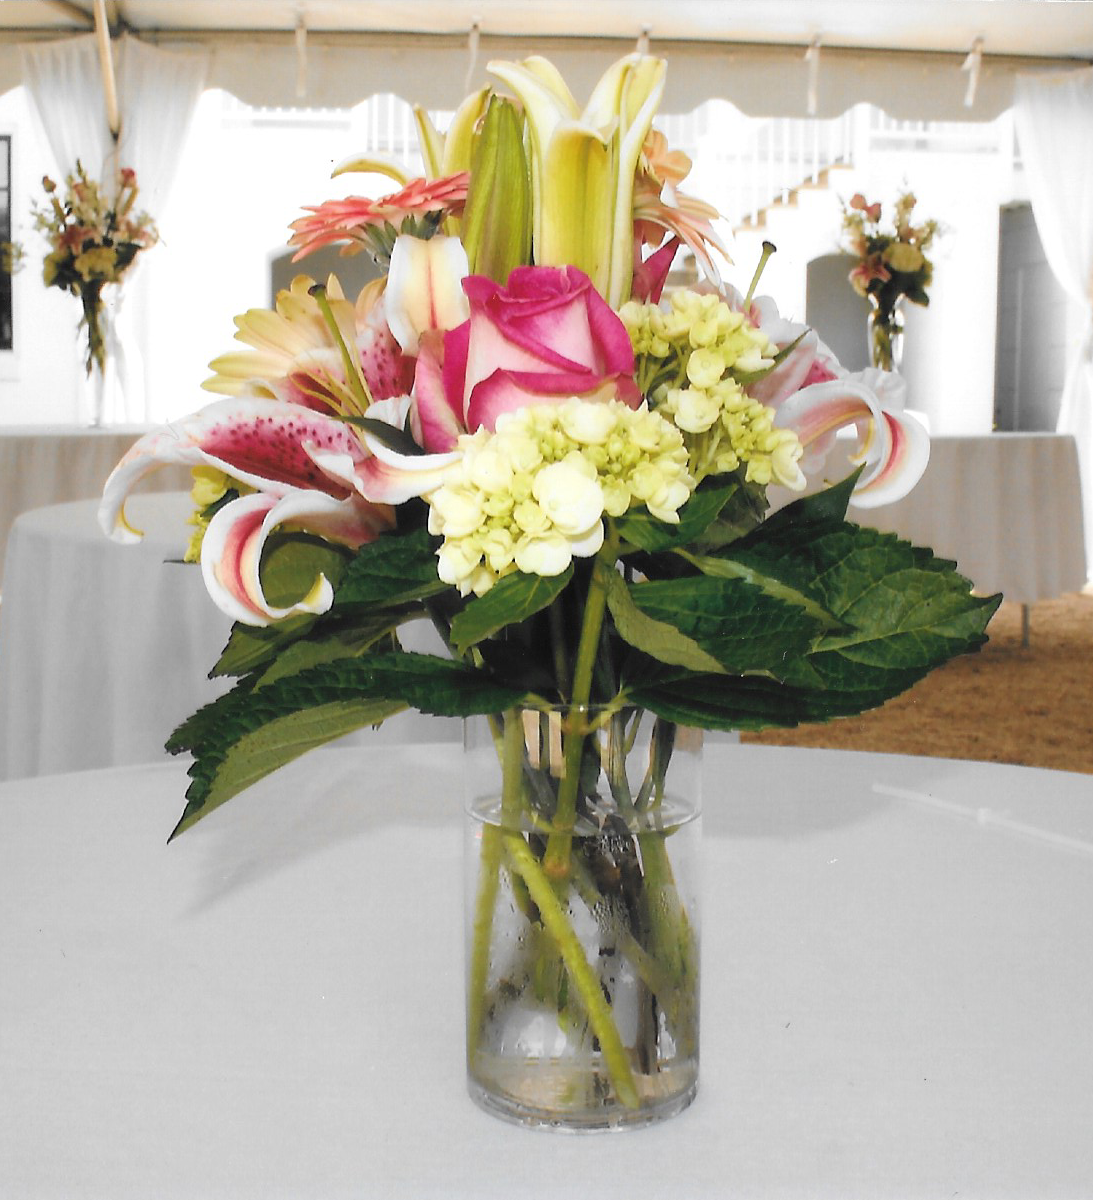 Make Your Reception One to Remember